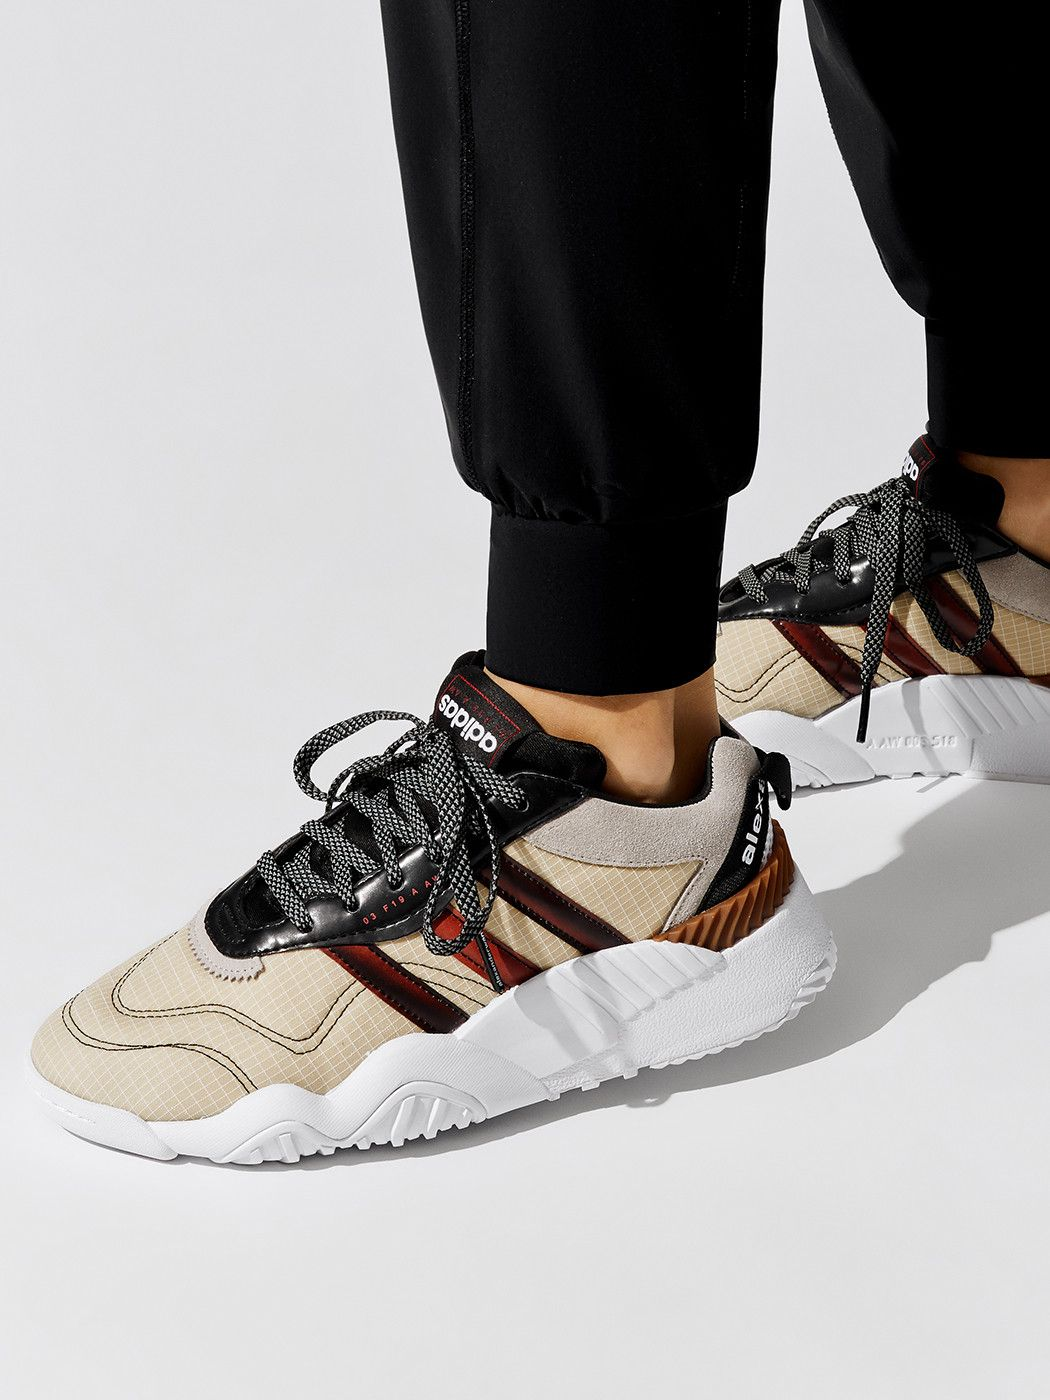 adidas aw turnout trainer on feet